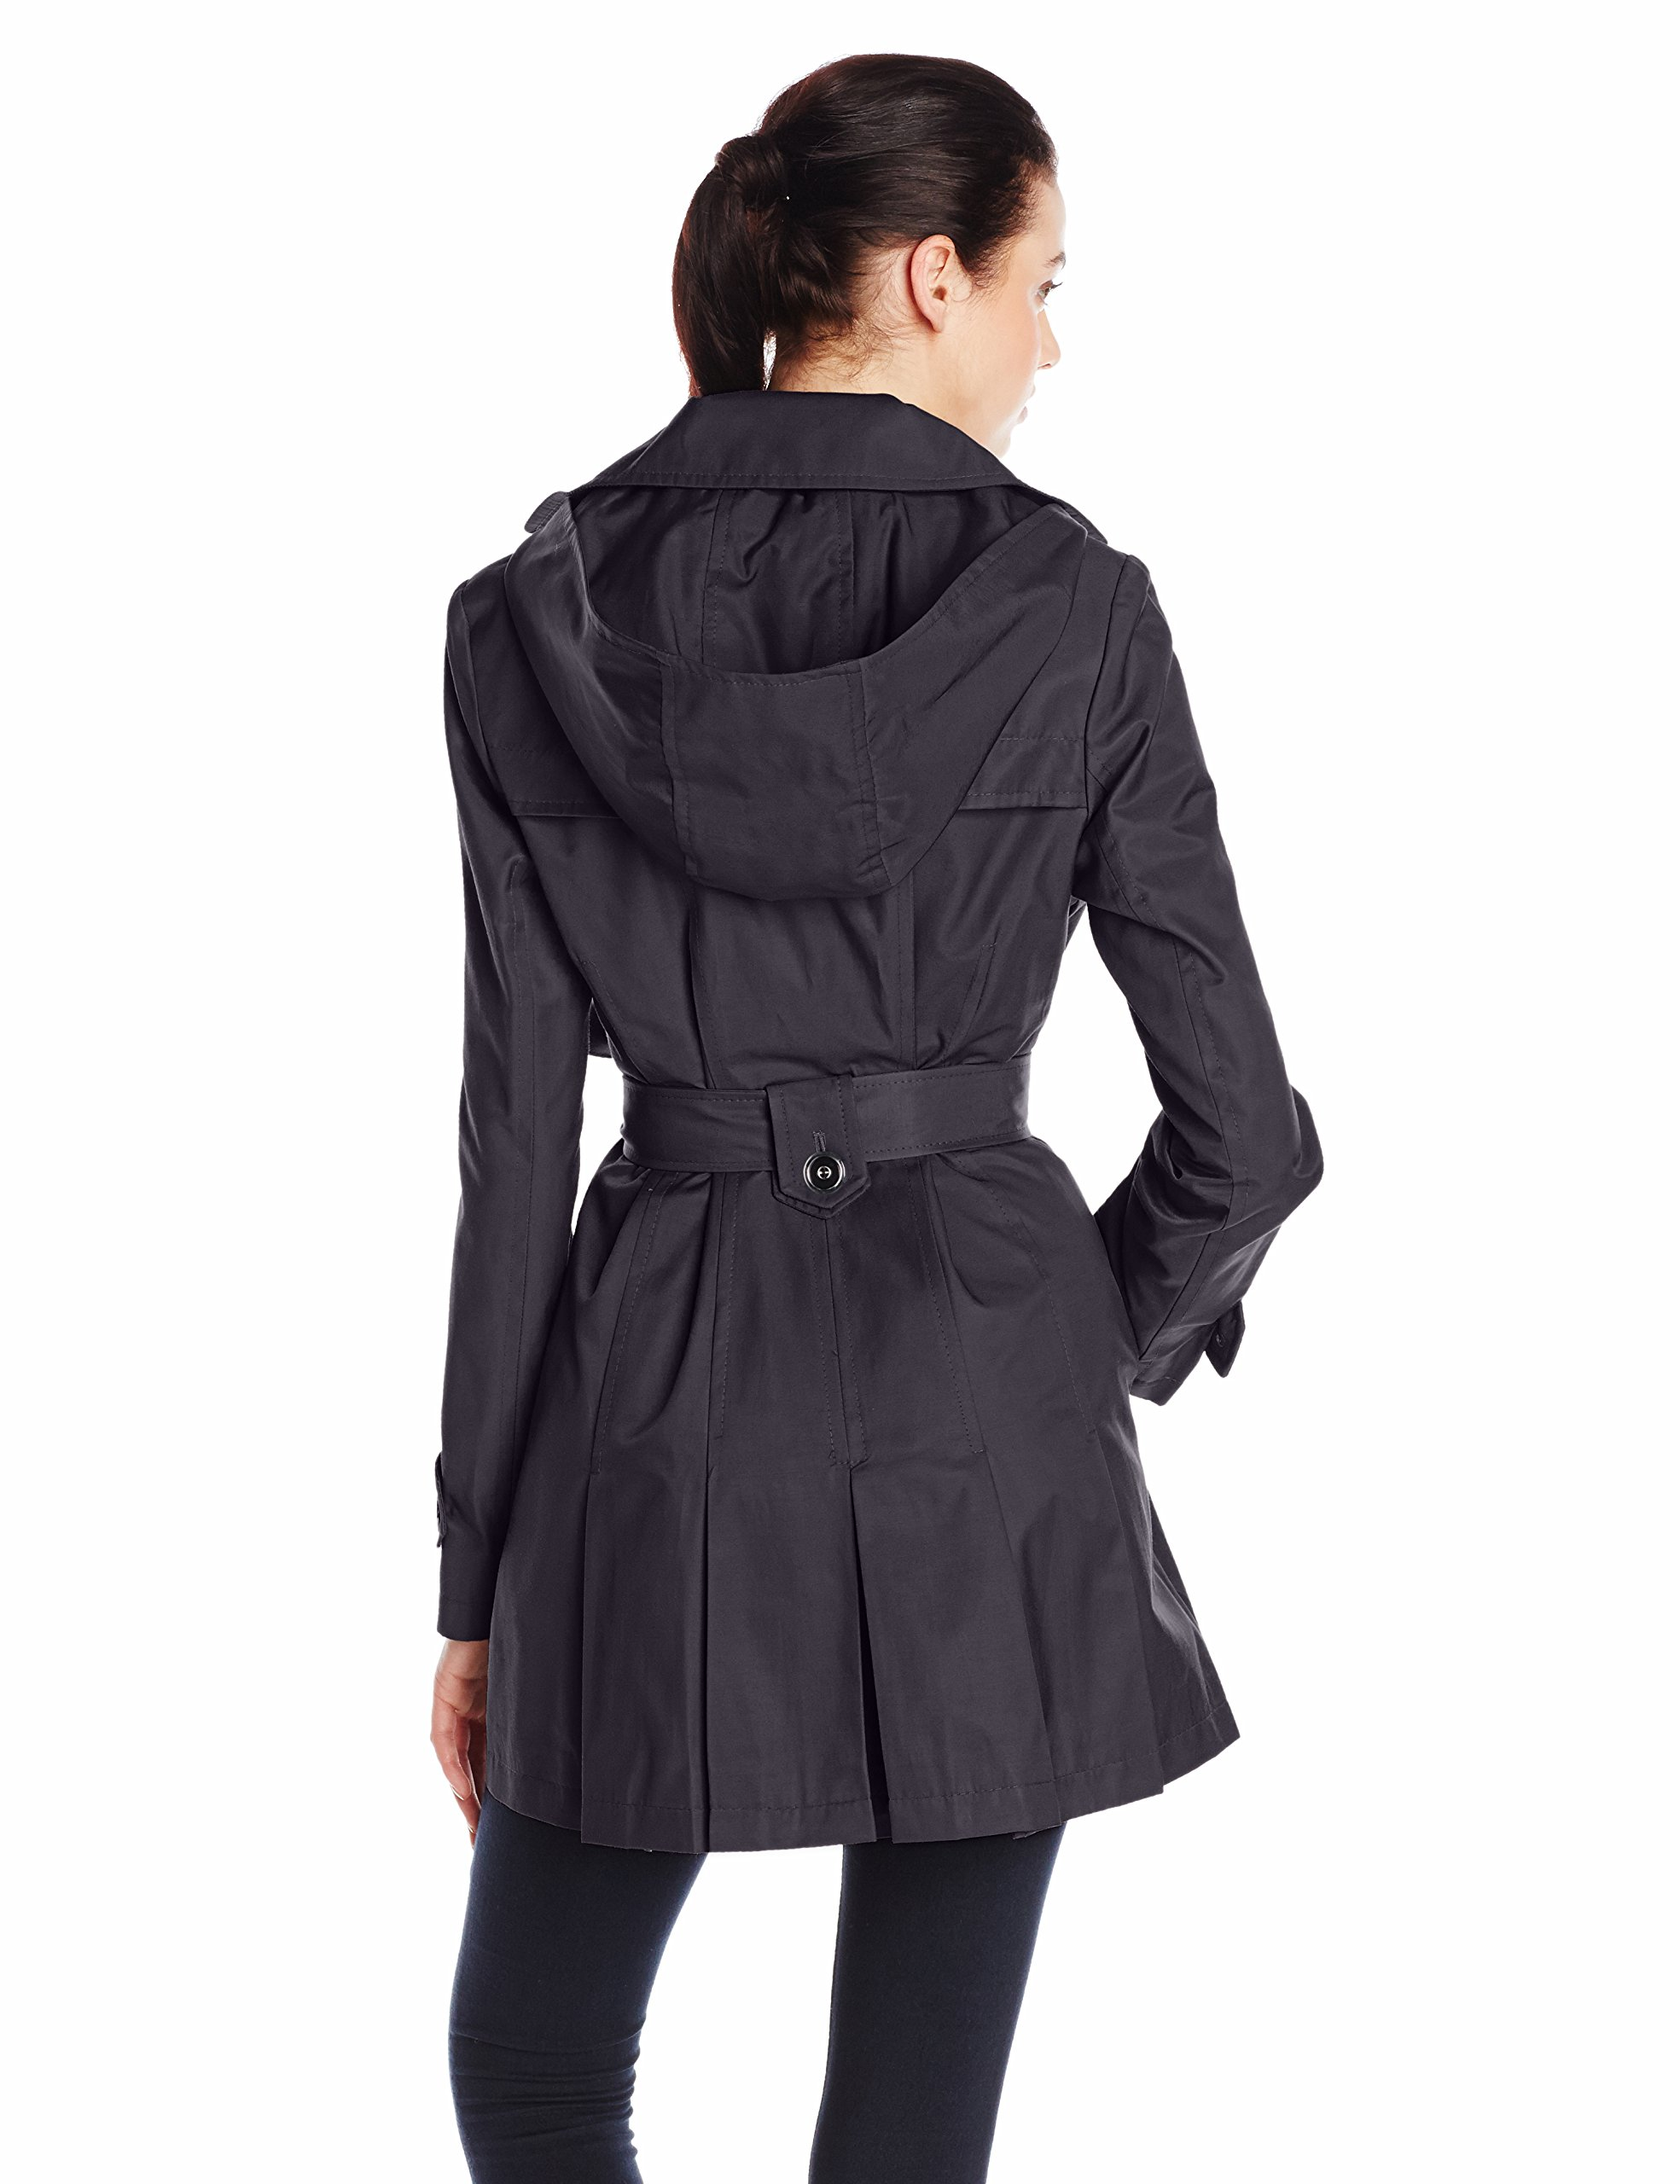 Via Spiga Women's Single-Breasted Belted Trench Coat with Hood, Navy, Medium by Via Spiga (Image #2)